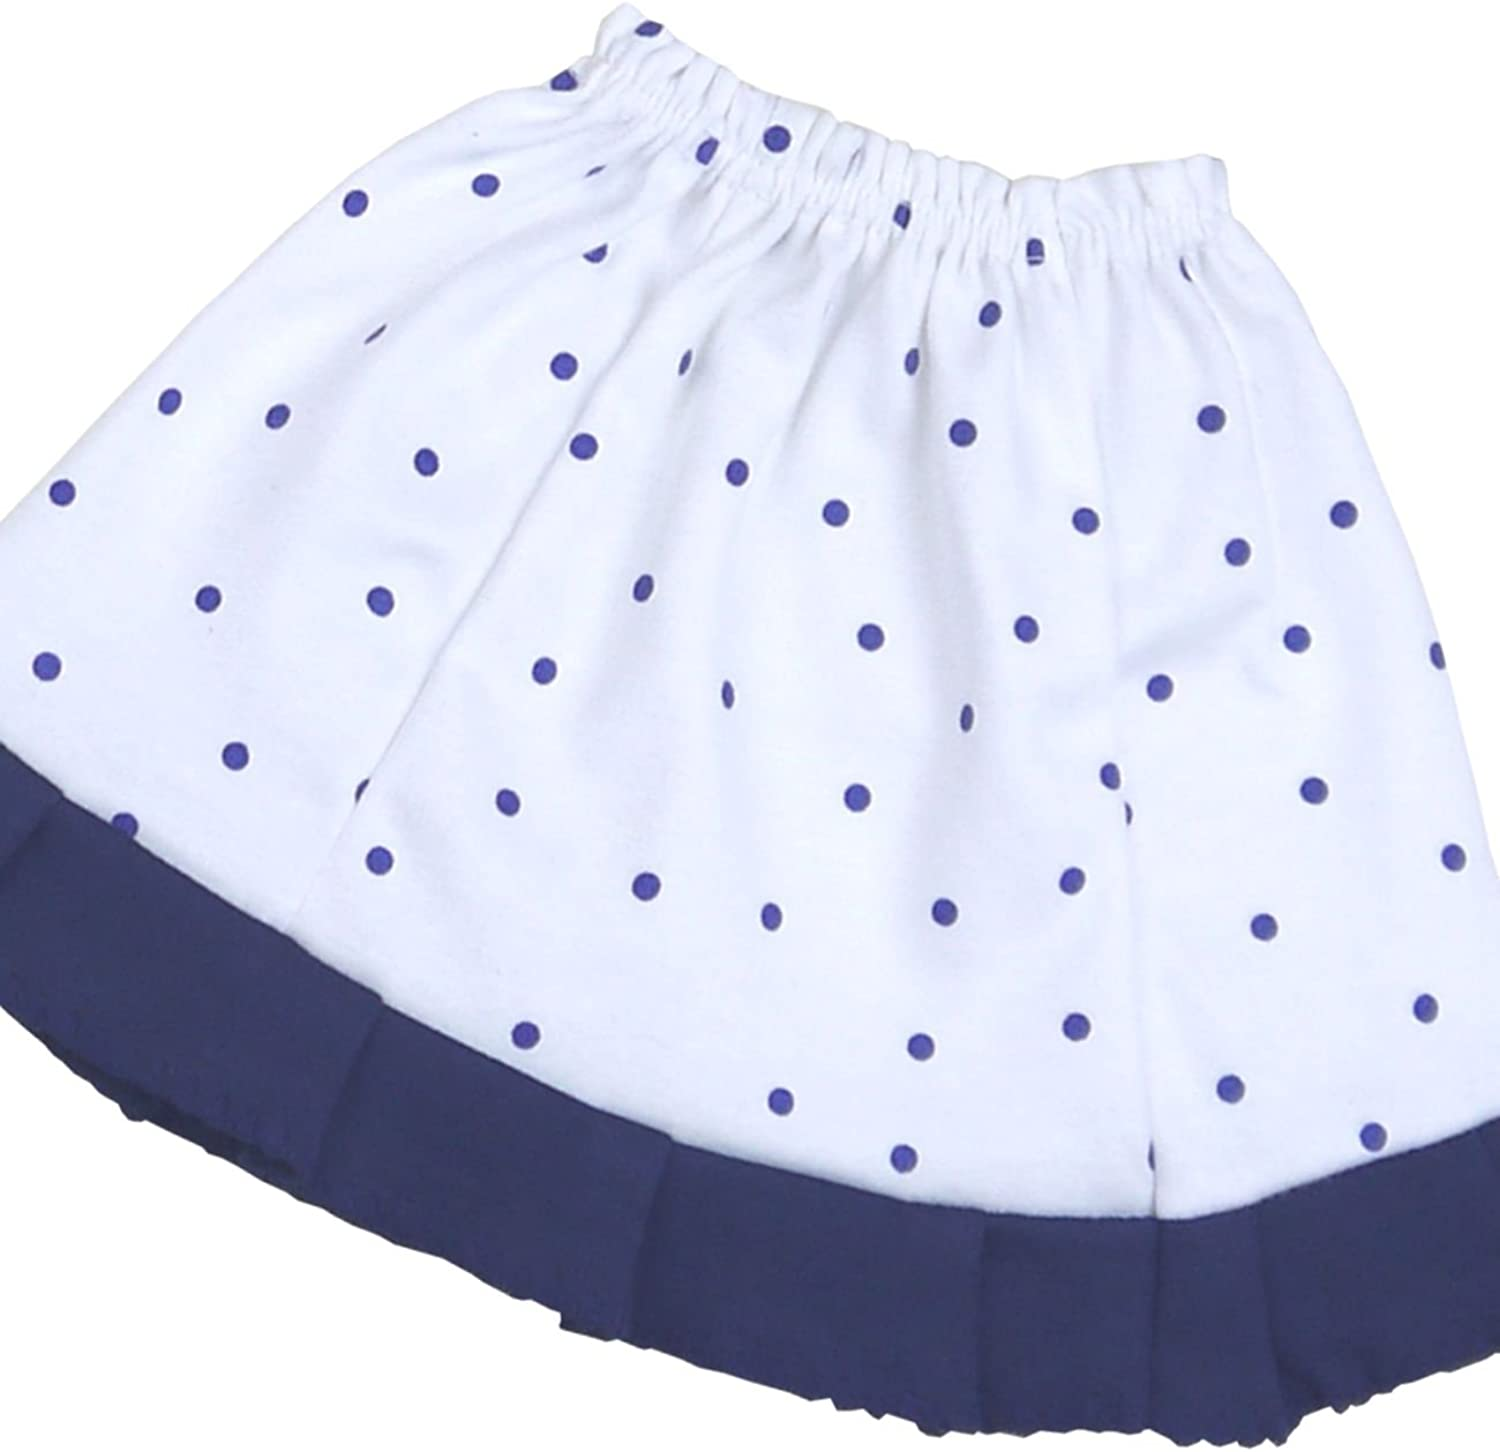 BabyPrem Preemie Early Baby 2 Piece Skirt /& One-Piece Set Girls Cotton Clothes